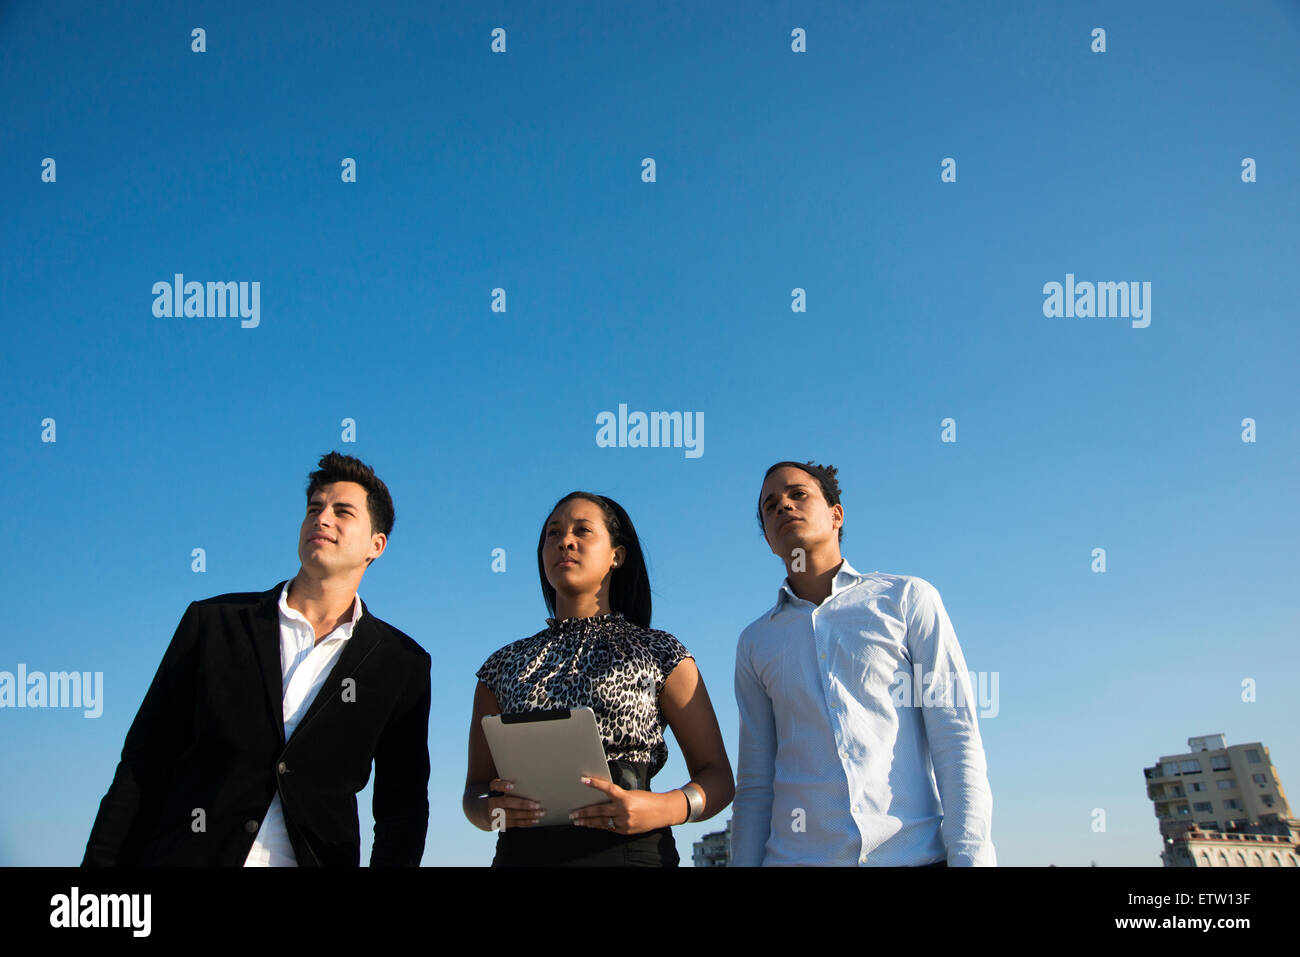 Three Latin executives outdoors - Stock Image